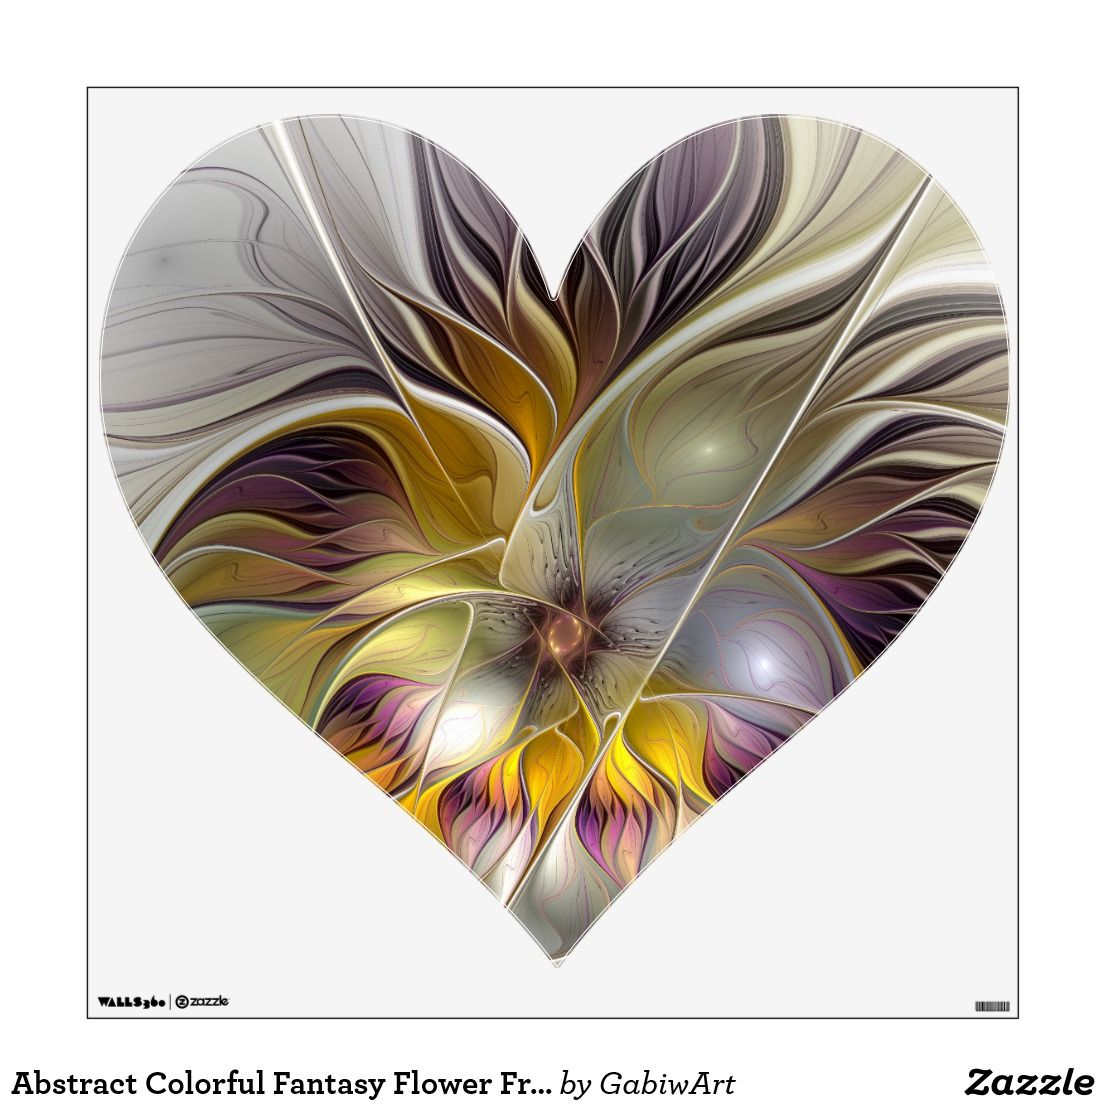 Abstract Colorful Fantasy Flower Fractal Art Heart Wall Decal Zazzle Com In 2021 Heart Wall Decal Fractal Art Abstract